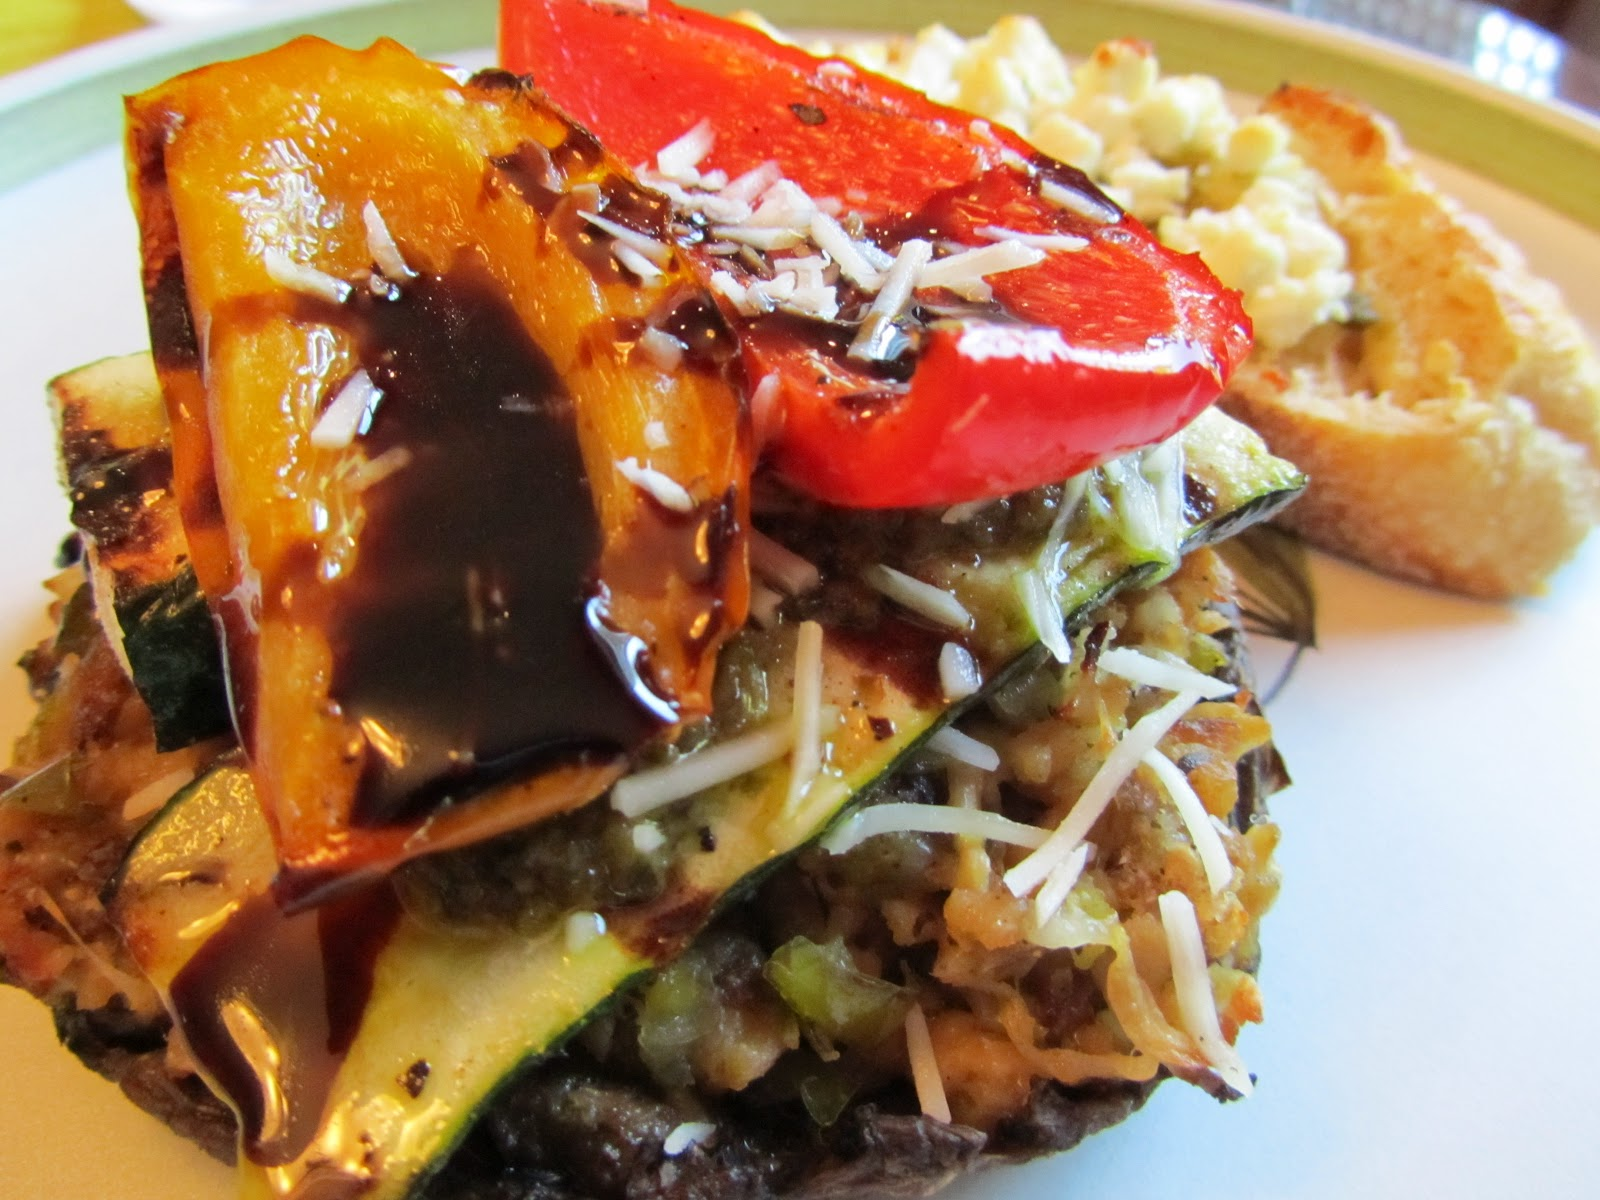 ... STACKED WITH GRILLED VEGGIES, and PESTO AND GOAT CHEESE CROSTINI